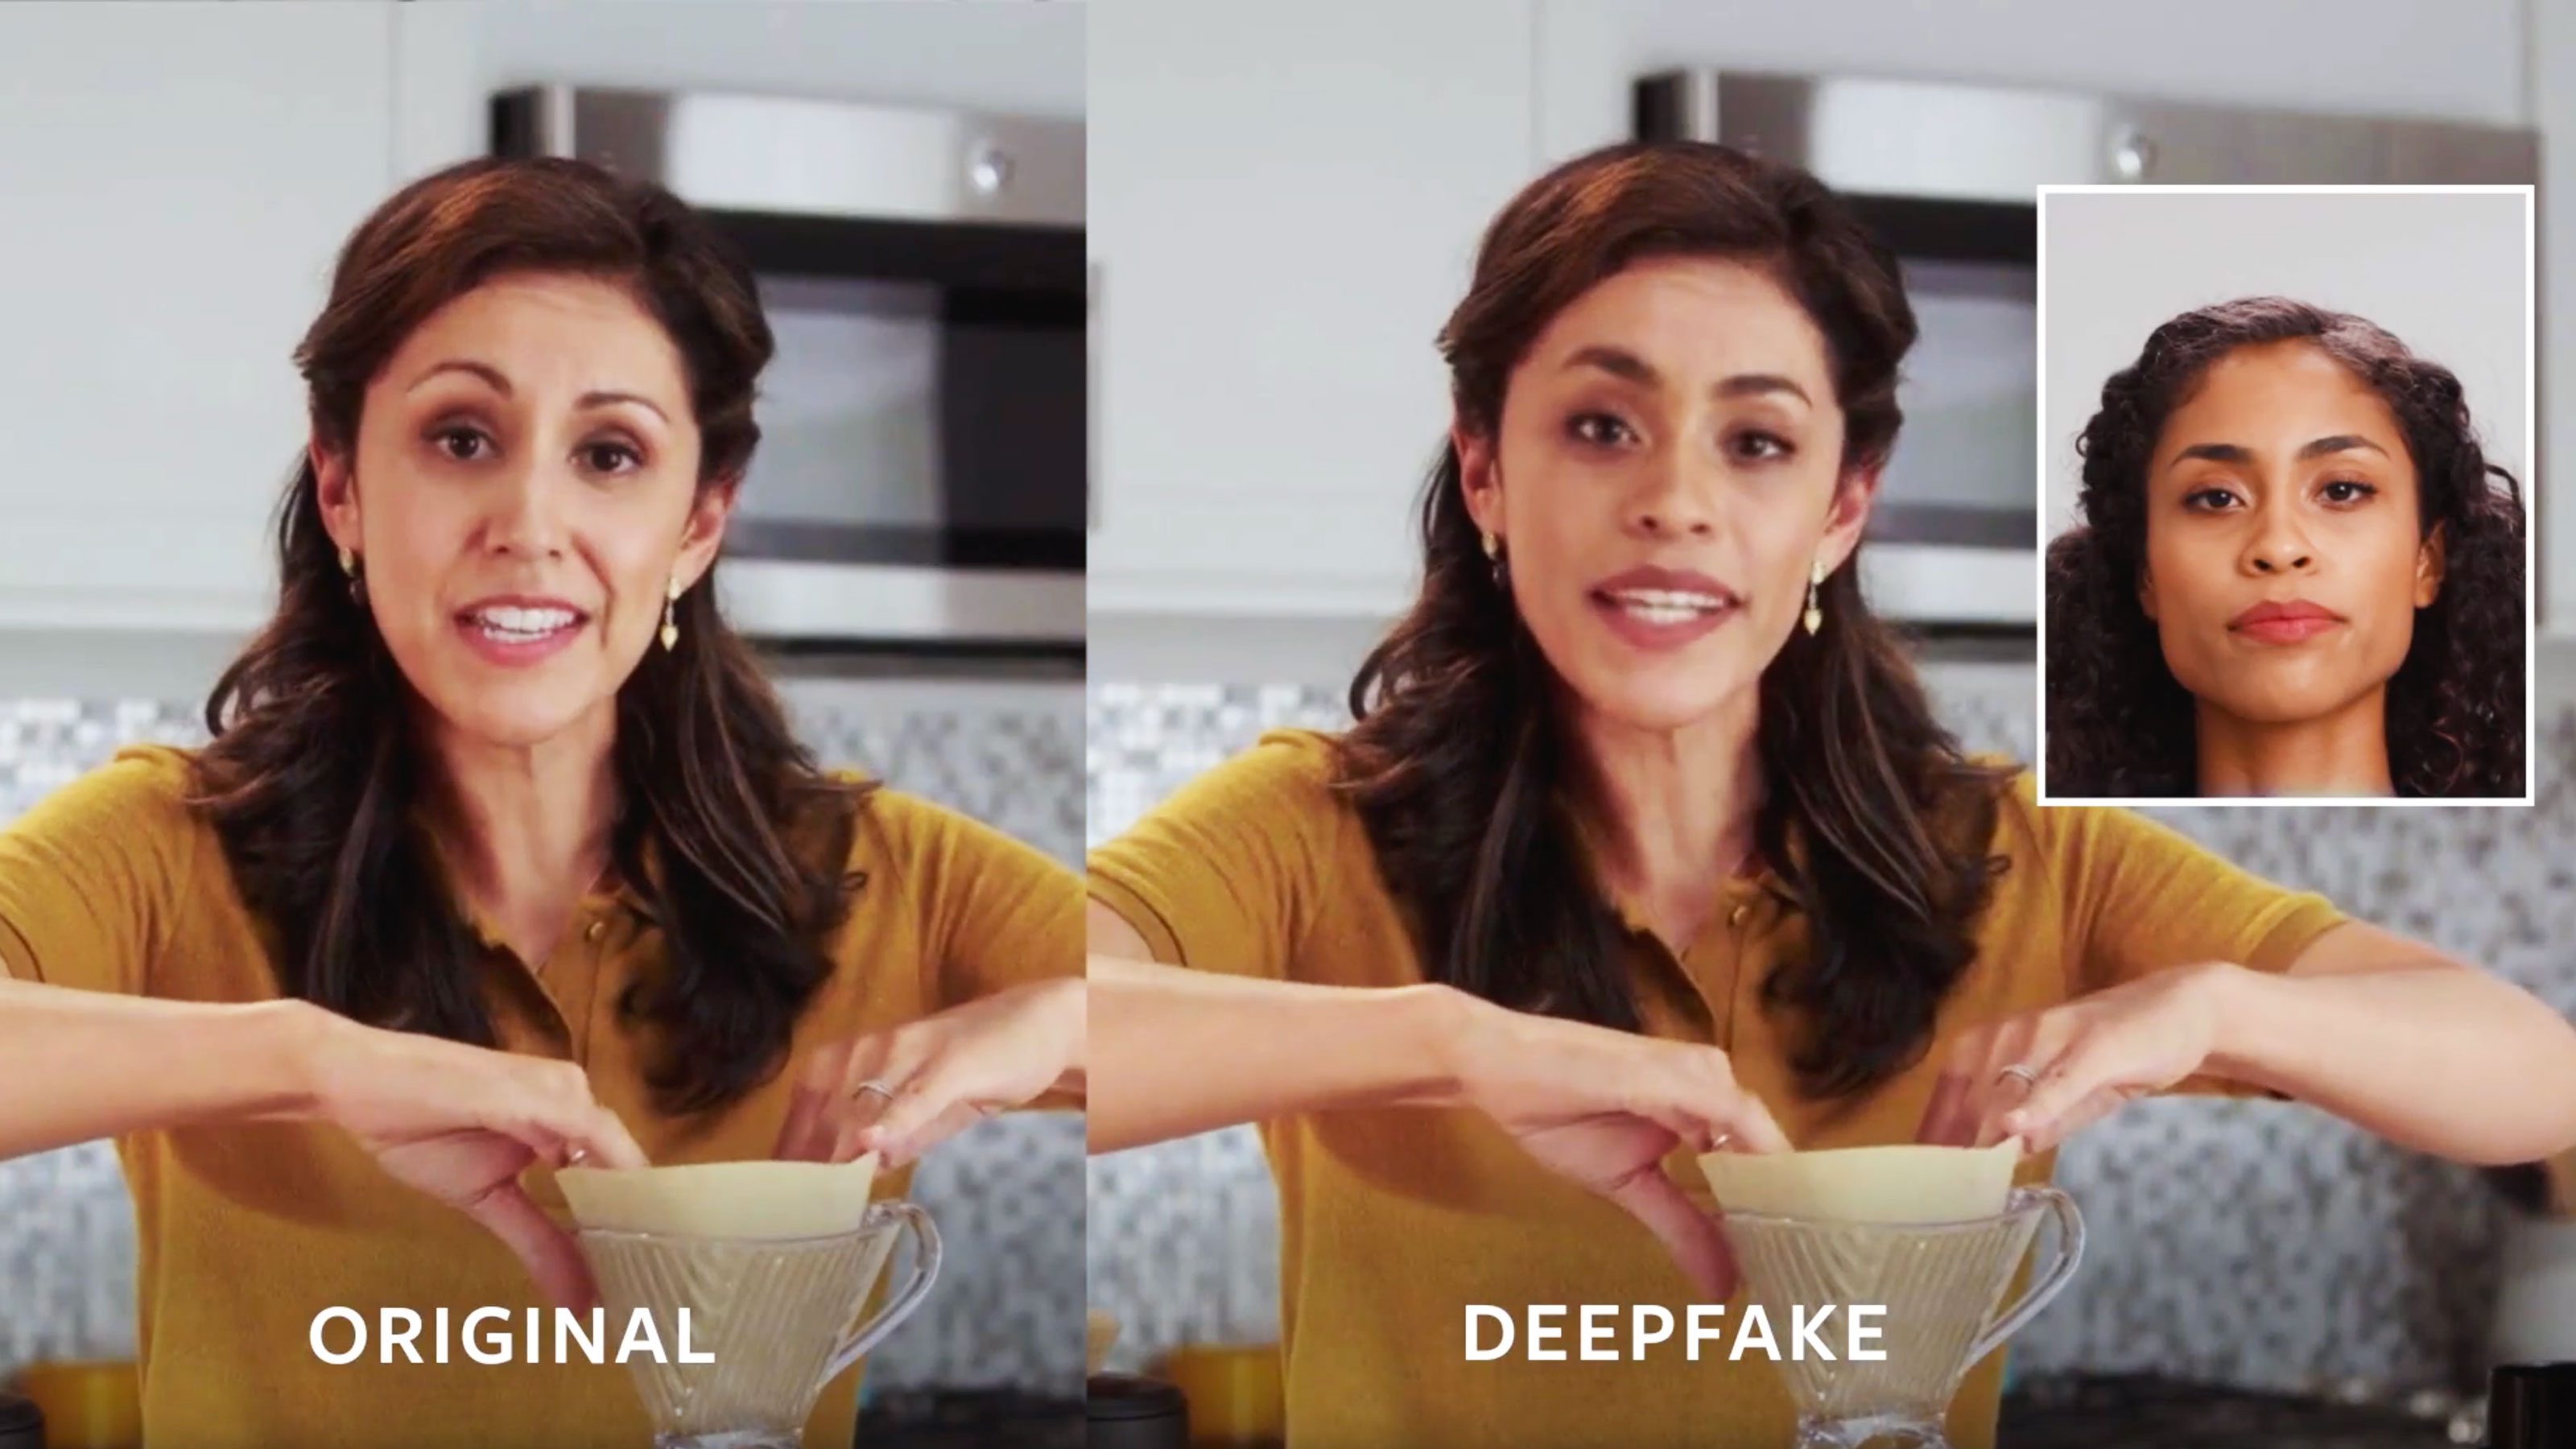 Side-by-side images of original video and deepfake.